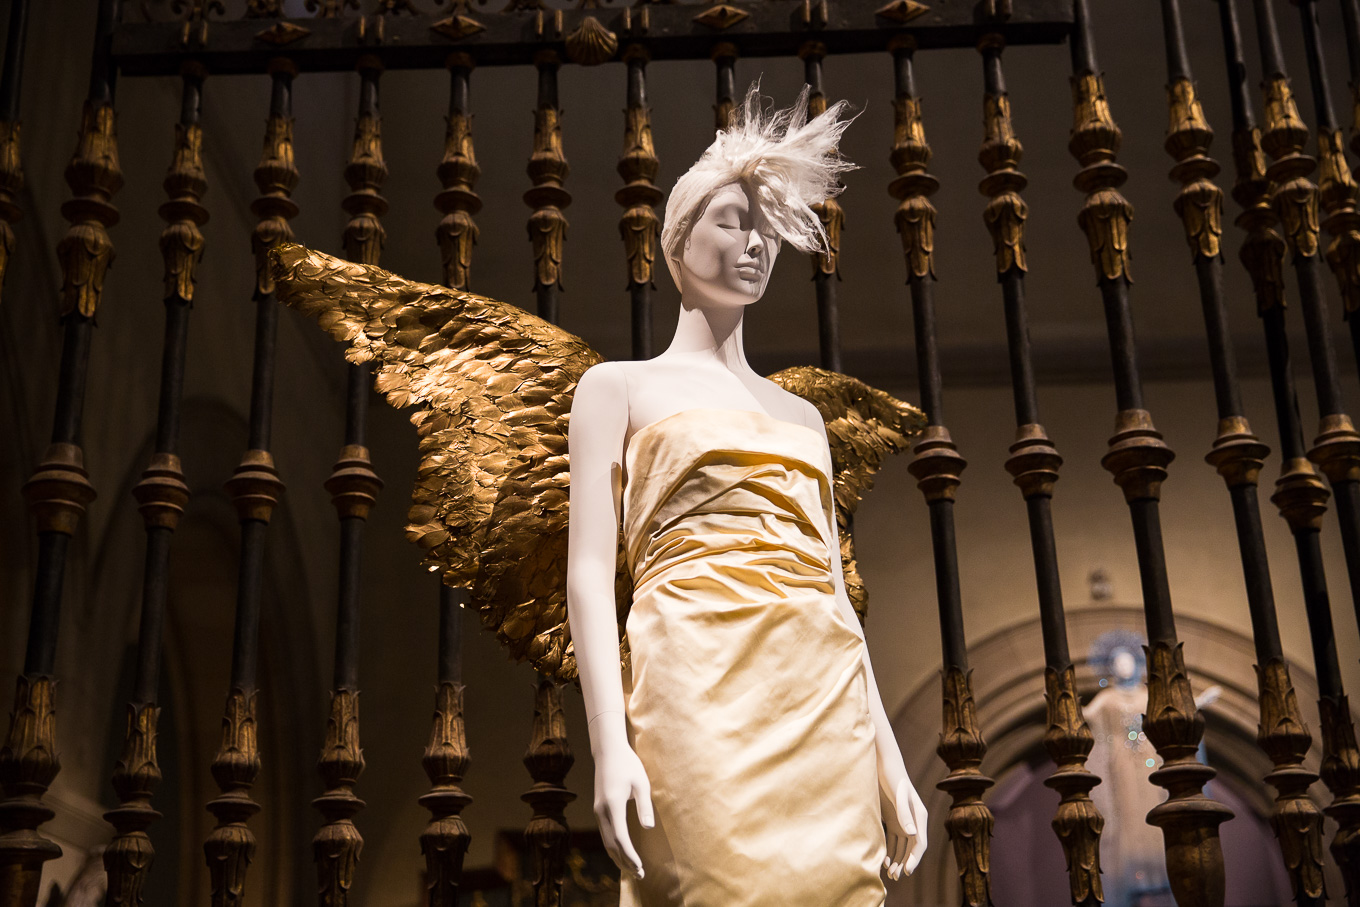 A mannequin wears an ivory evening dress and gold angel wings.